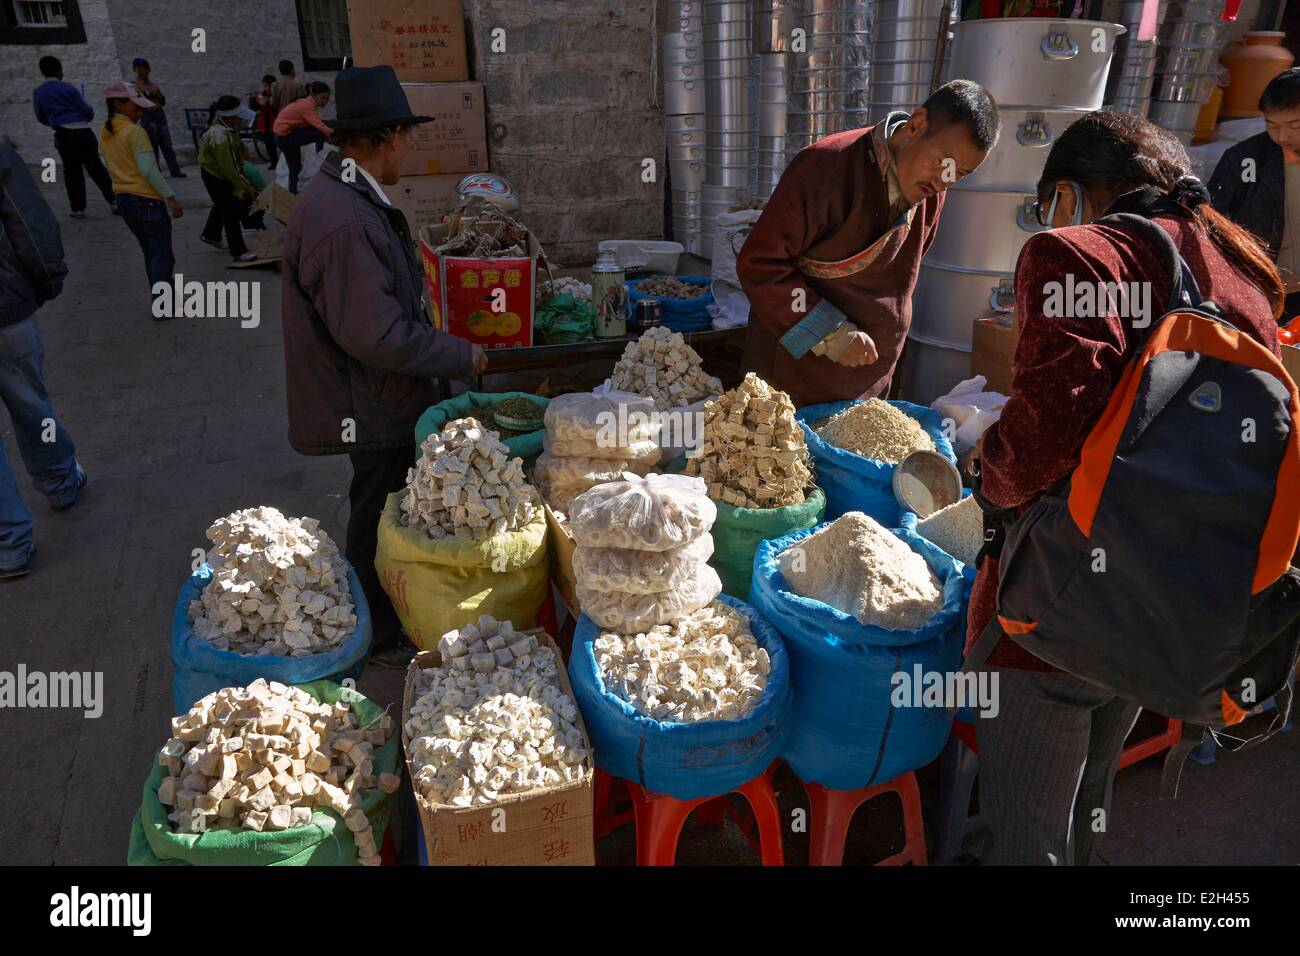 China Tibet Lhassa food market of Barkor with dried yak cheese - Stock Image